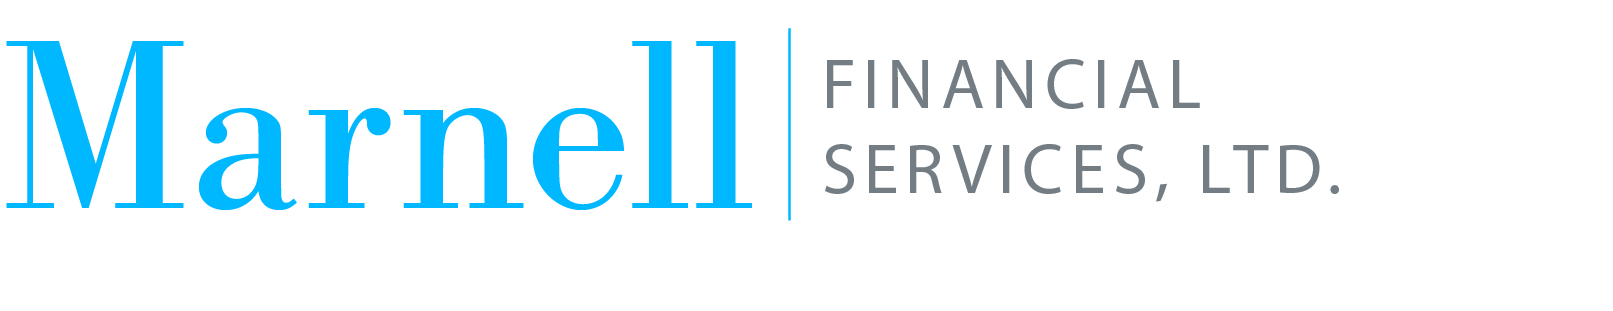 Marnell Financial Services Ltd.